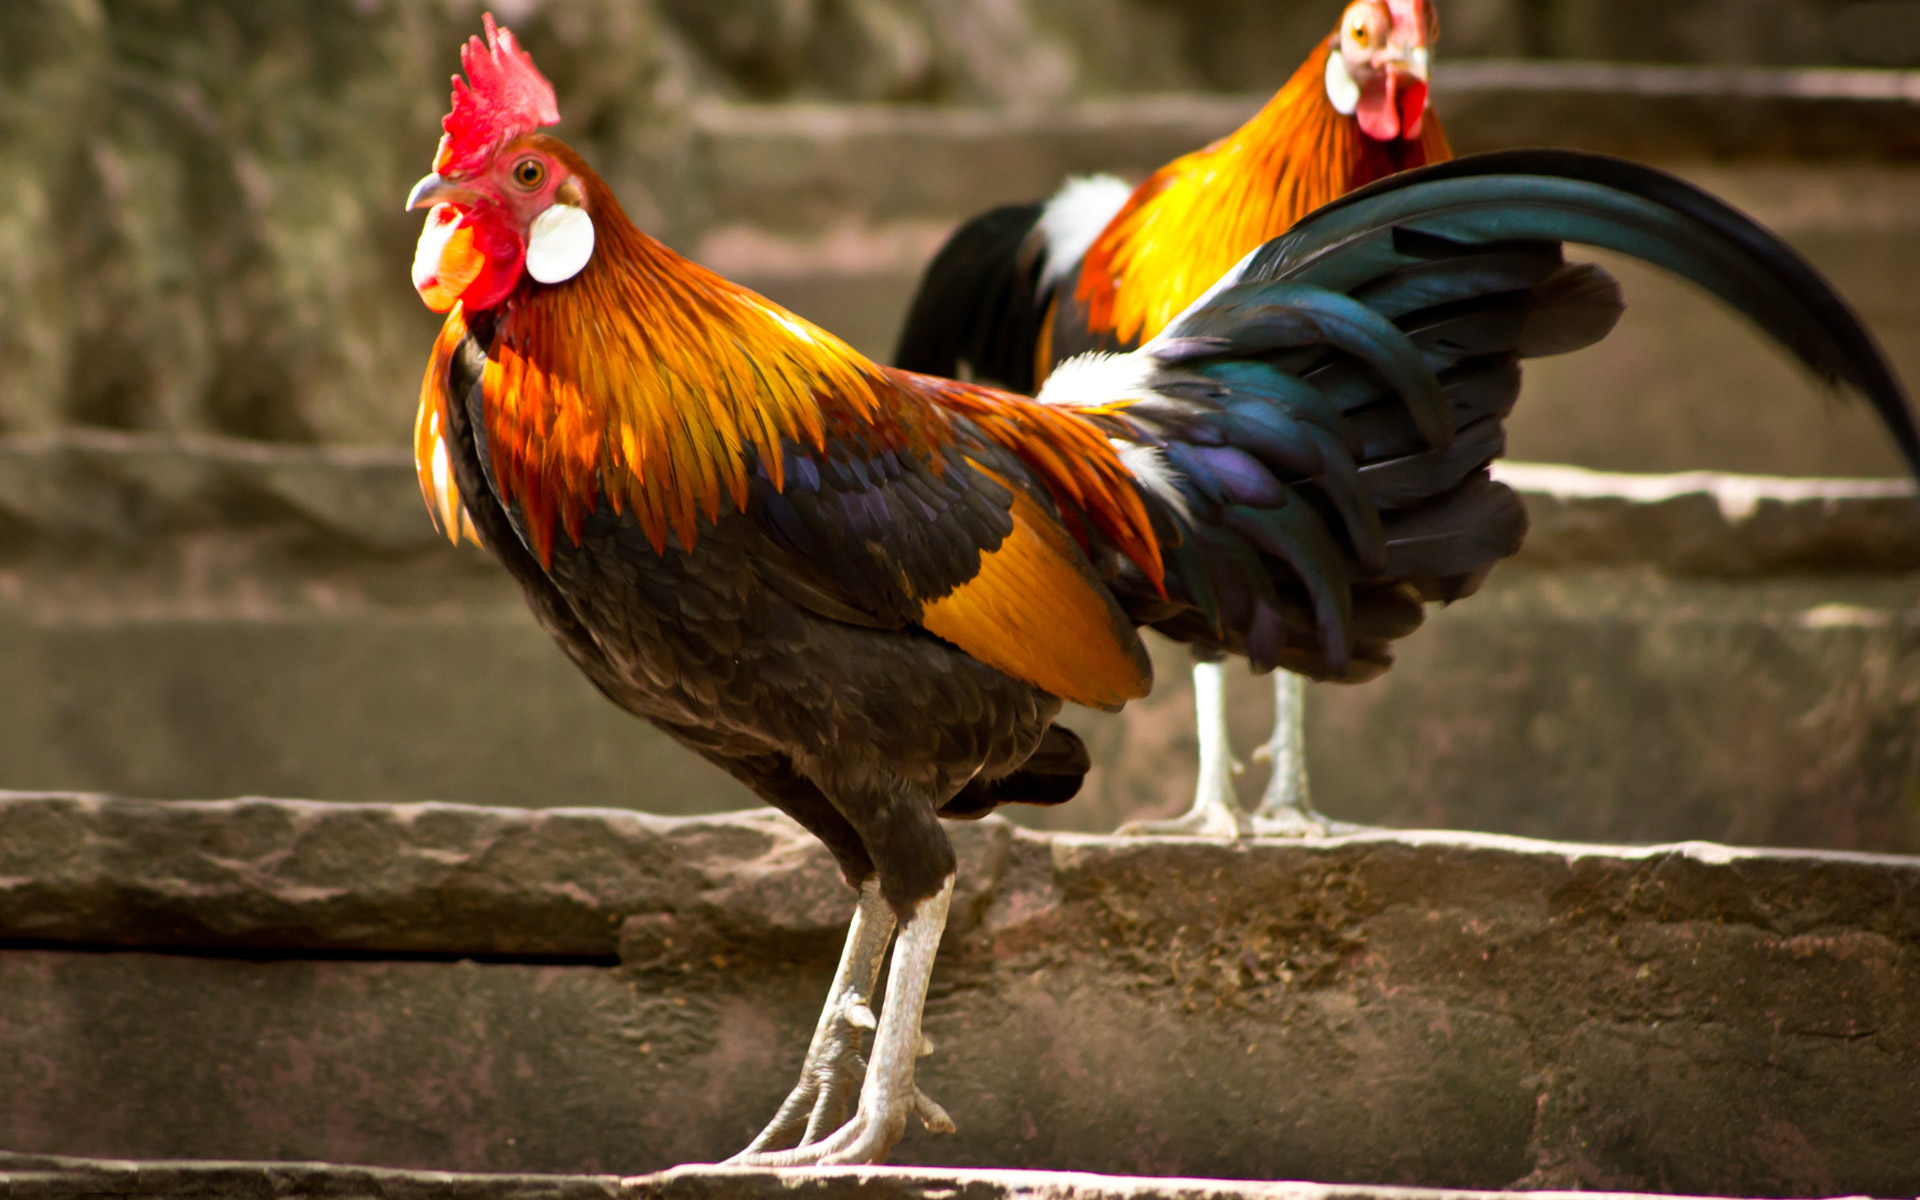 Wallpaper Chickens And Roosters